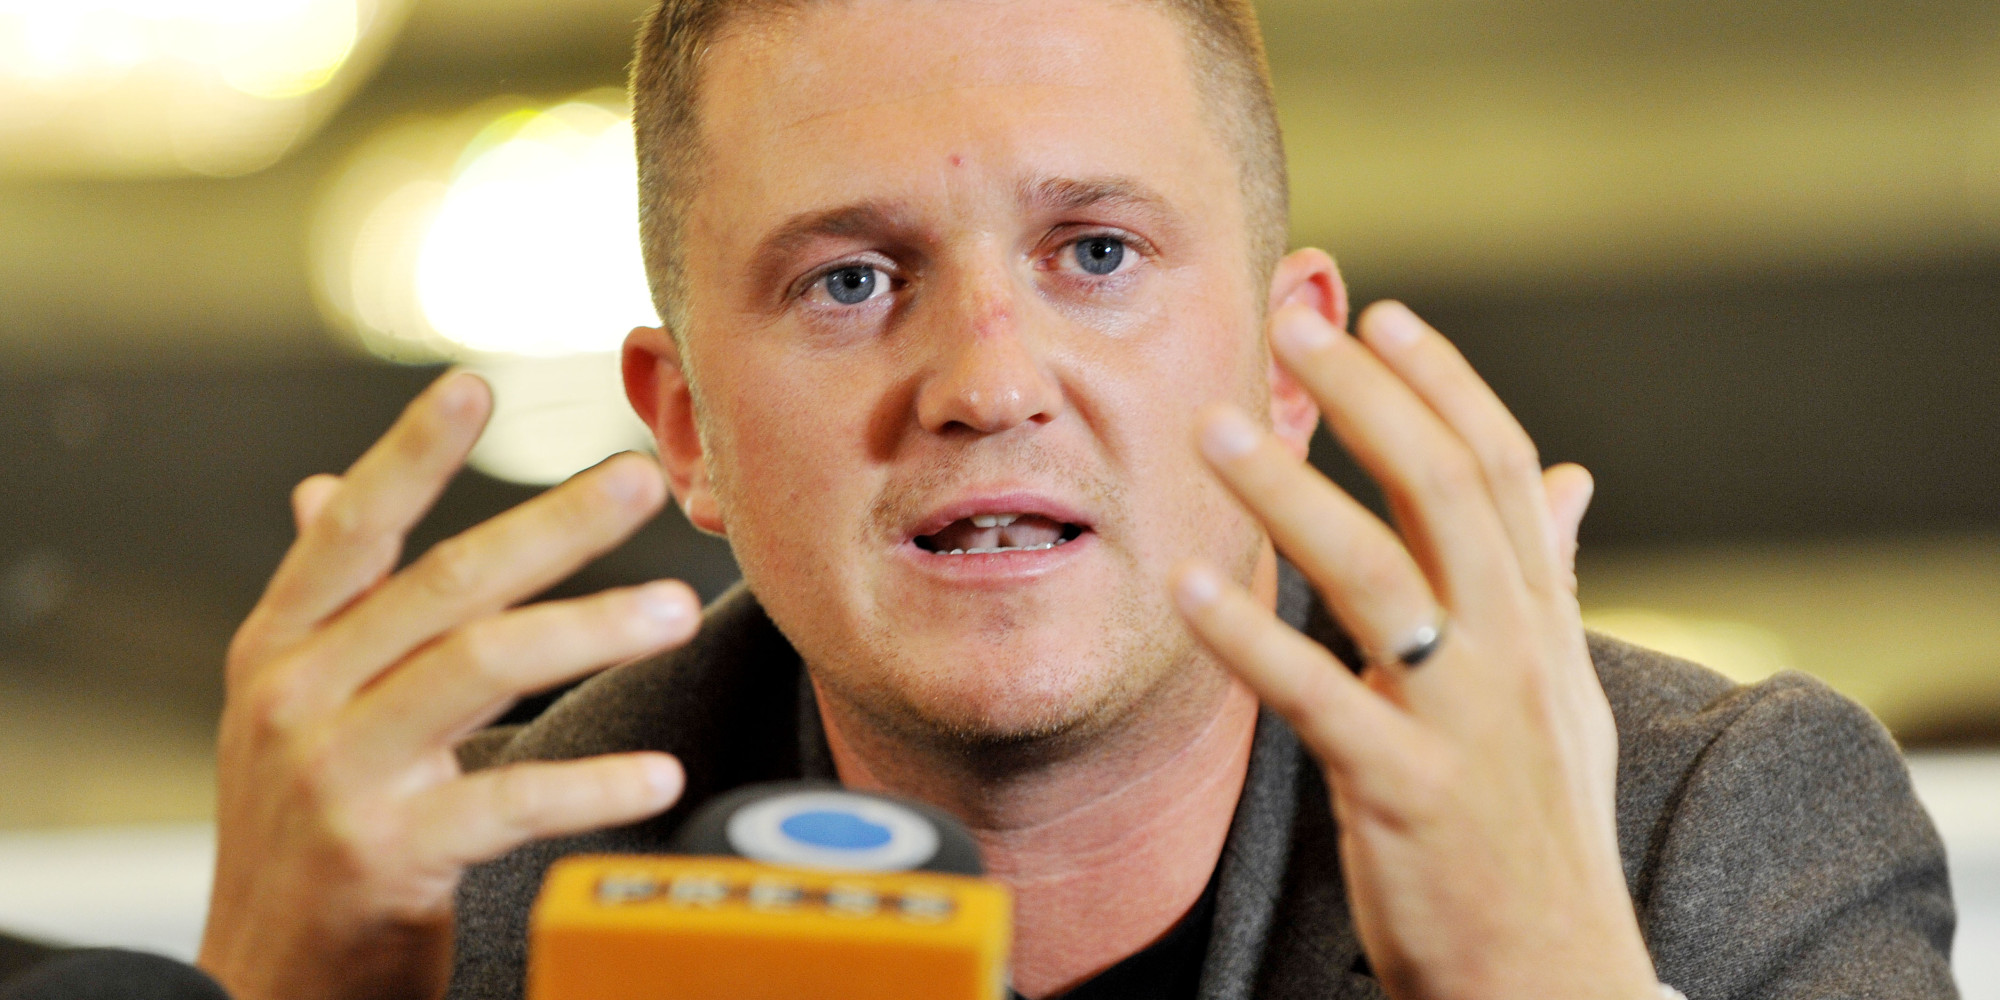 tommy robinson - photo #14